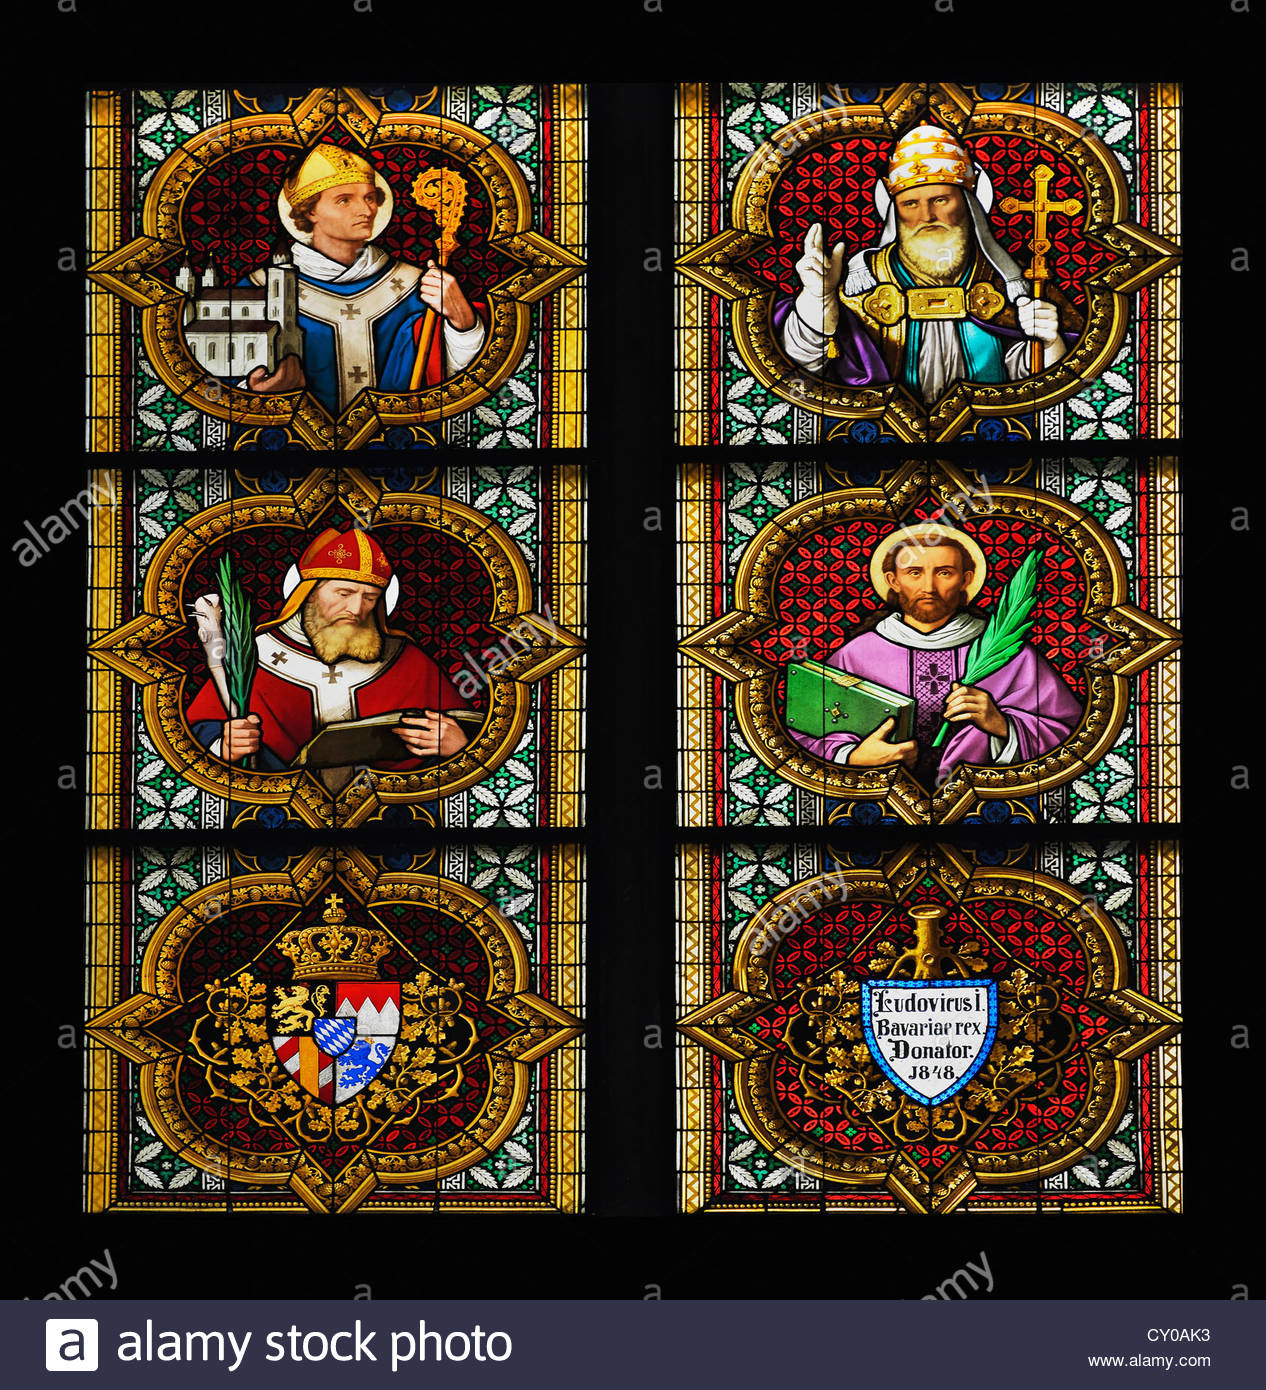 Bayernfenster window, lower part of Johannesfenster window, Christian rulers, the coat of arms of Bavarian and the - Stock Image